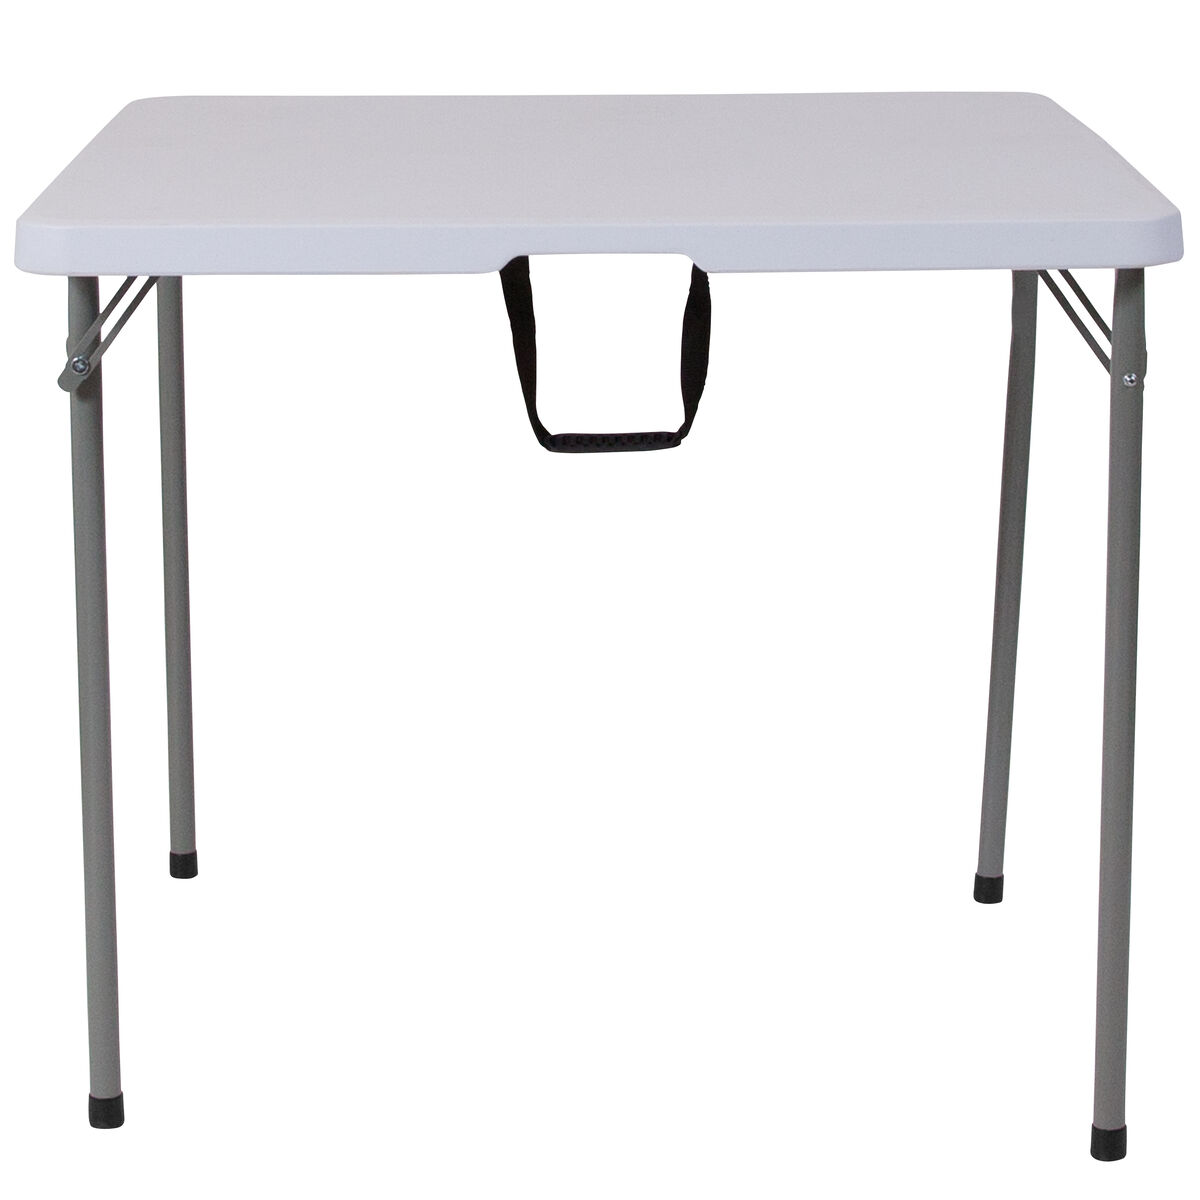 Our 34 Square Bi Fold Granite White Plastic Folding Table With Carrying Handle